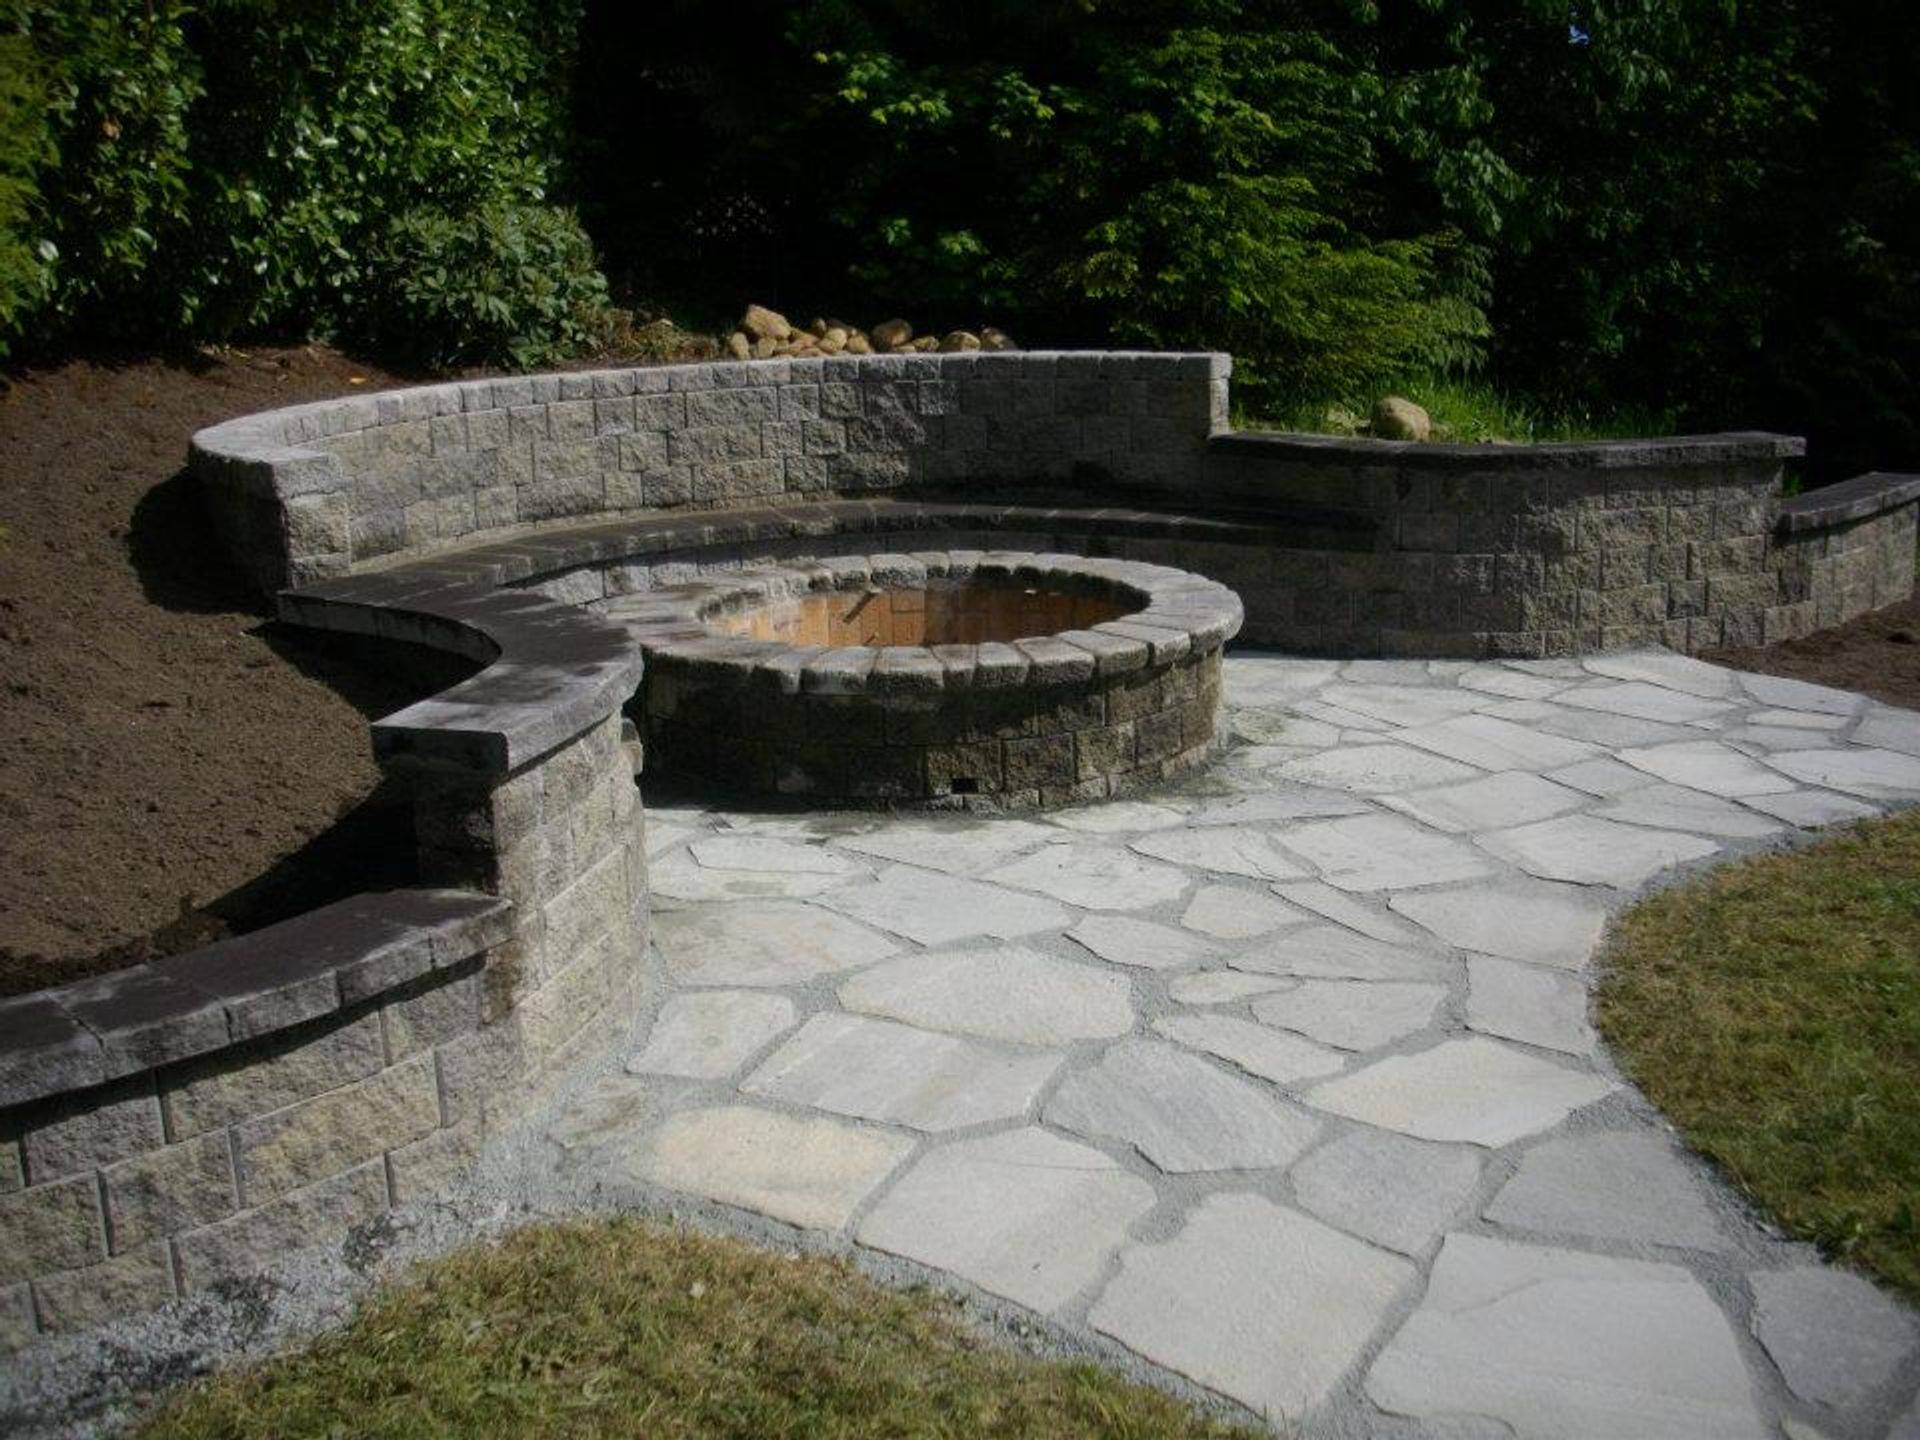 HARDSCAPES such as Retaining Walls & Firepits